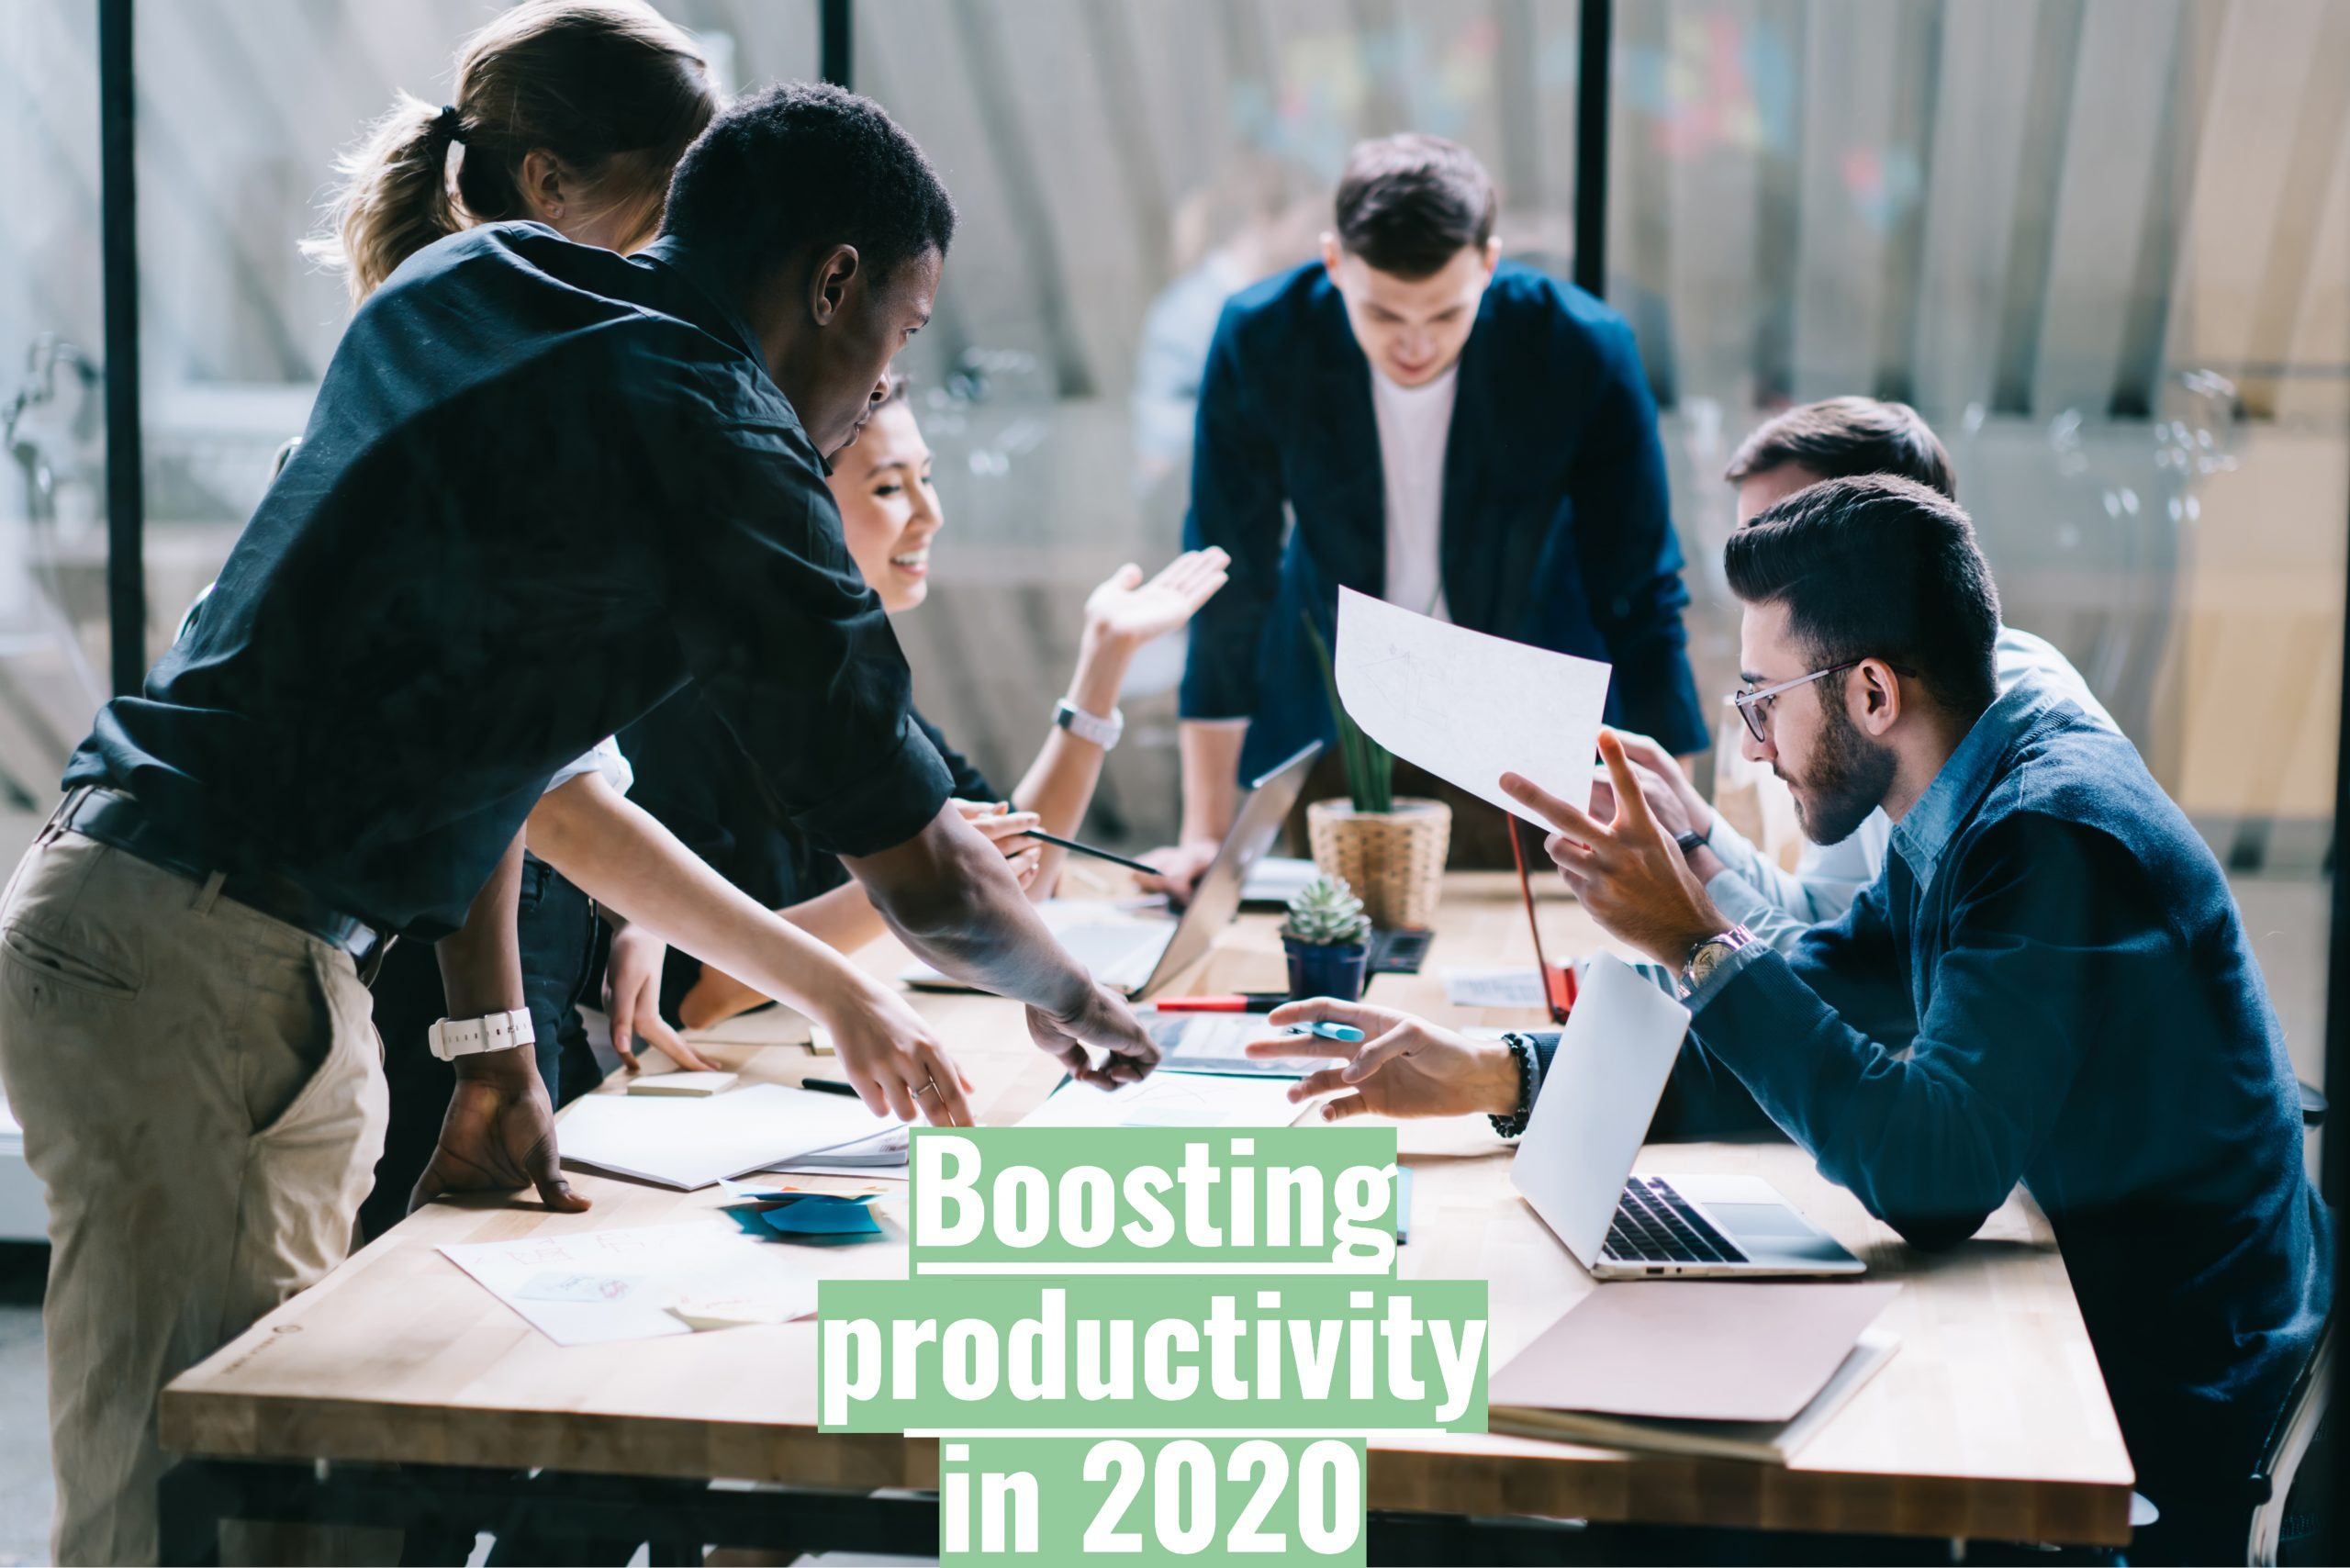 Productivity boosting tips